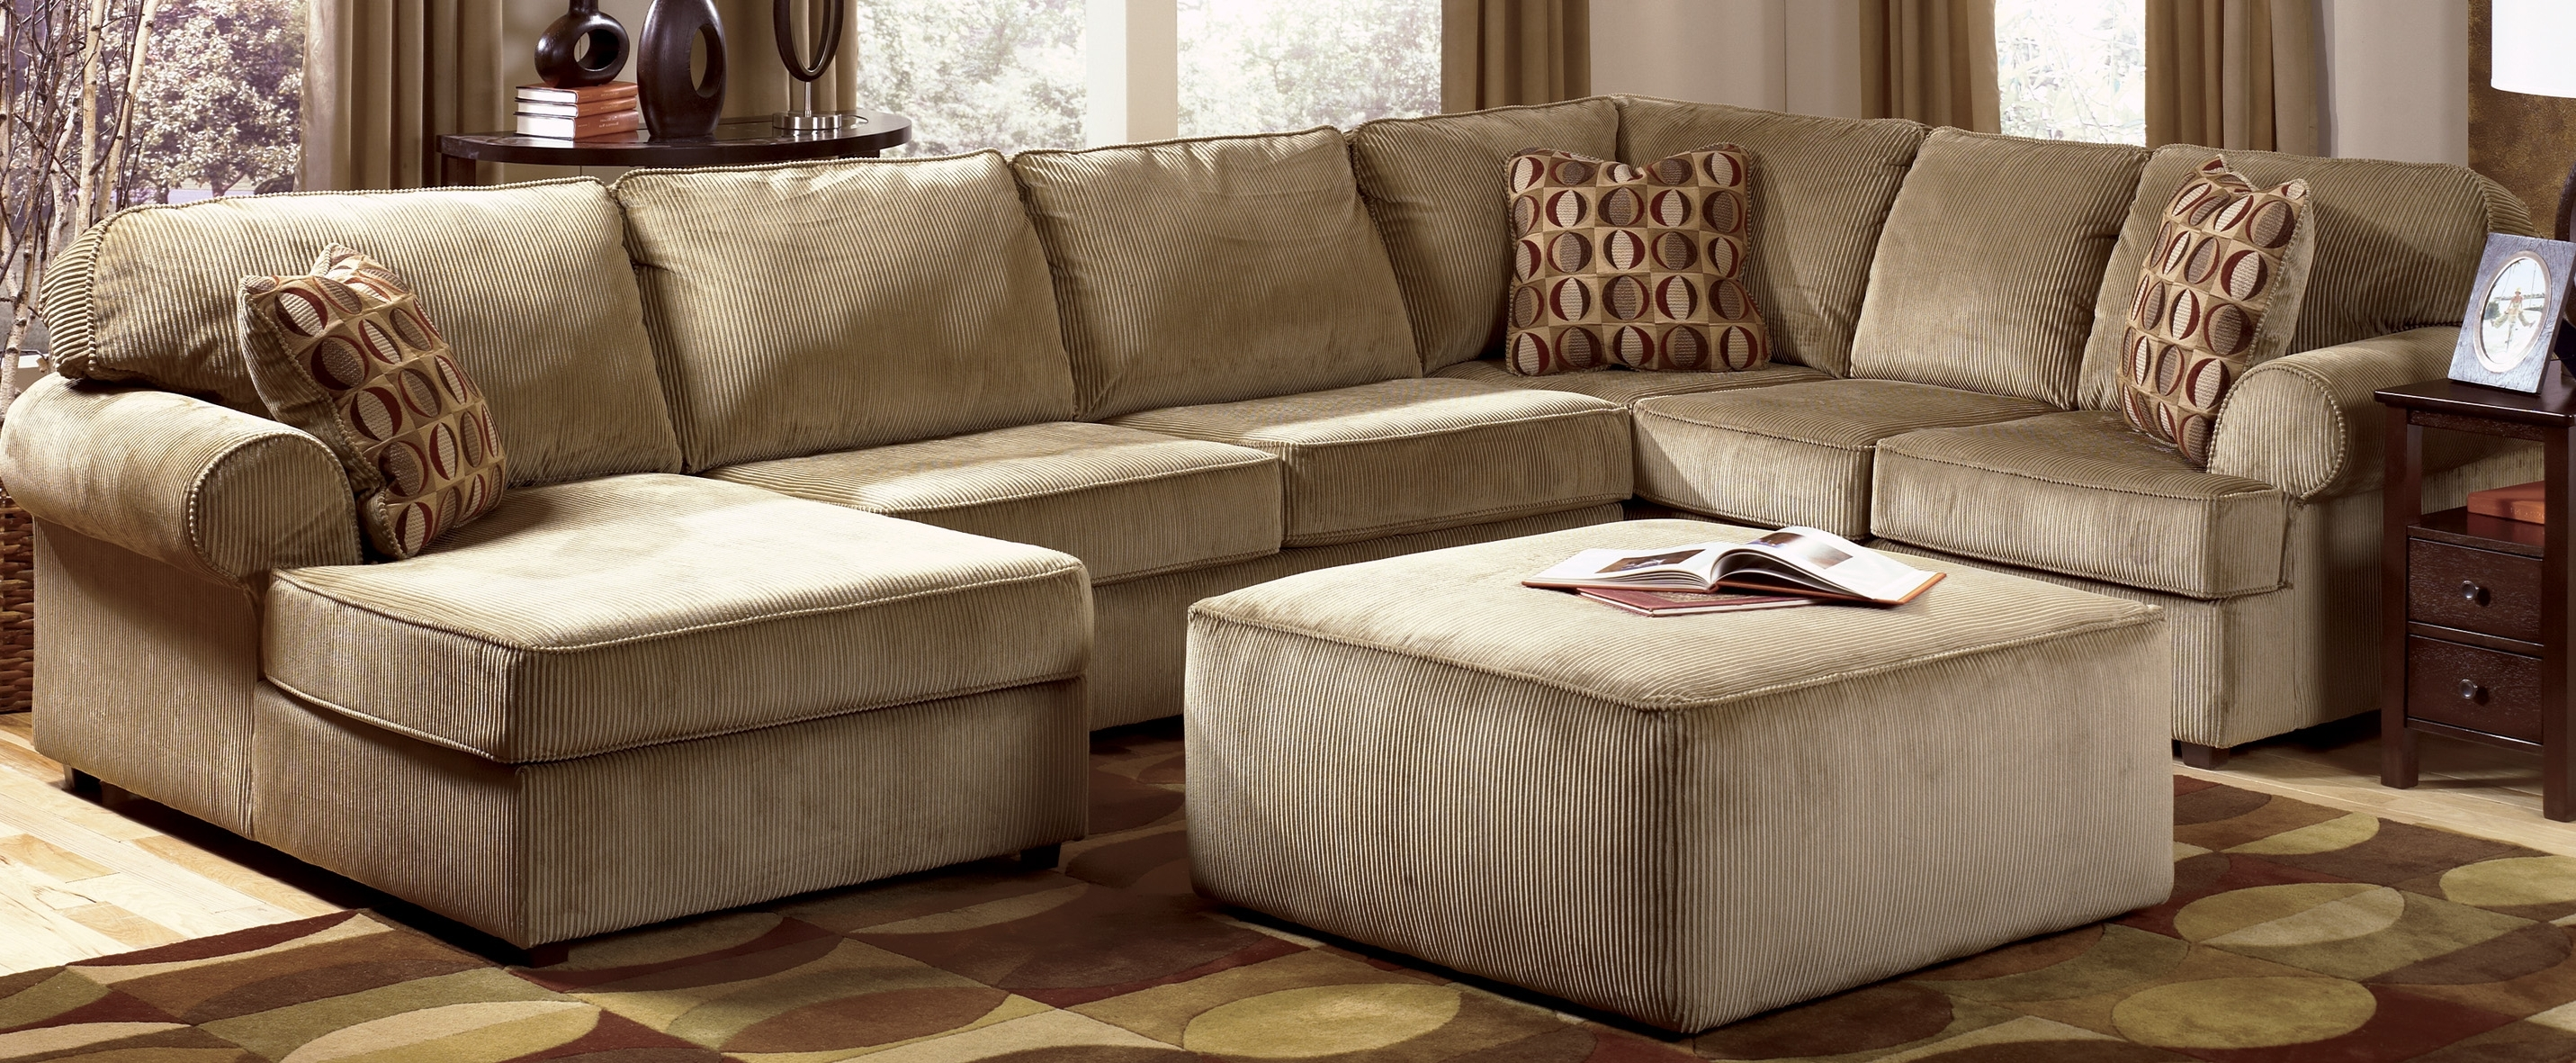 Sectional Sofa Design: Cheap Sofa Sectionals Brilliant Ideas Pertaining To Well Known Sectionals With Chaise And Ottoman (View 16 of 20)